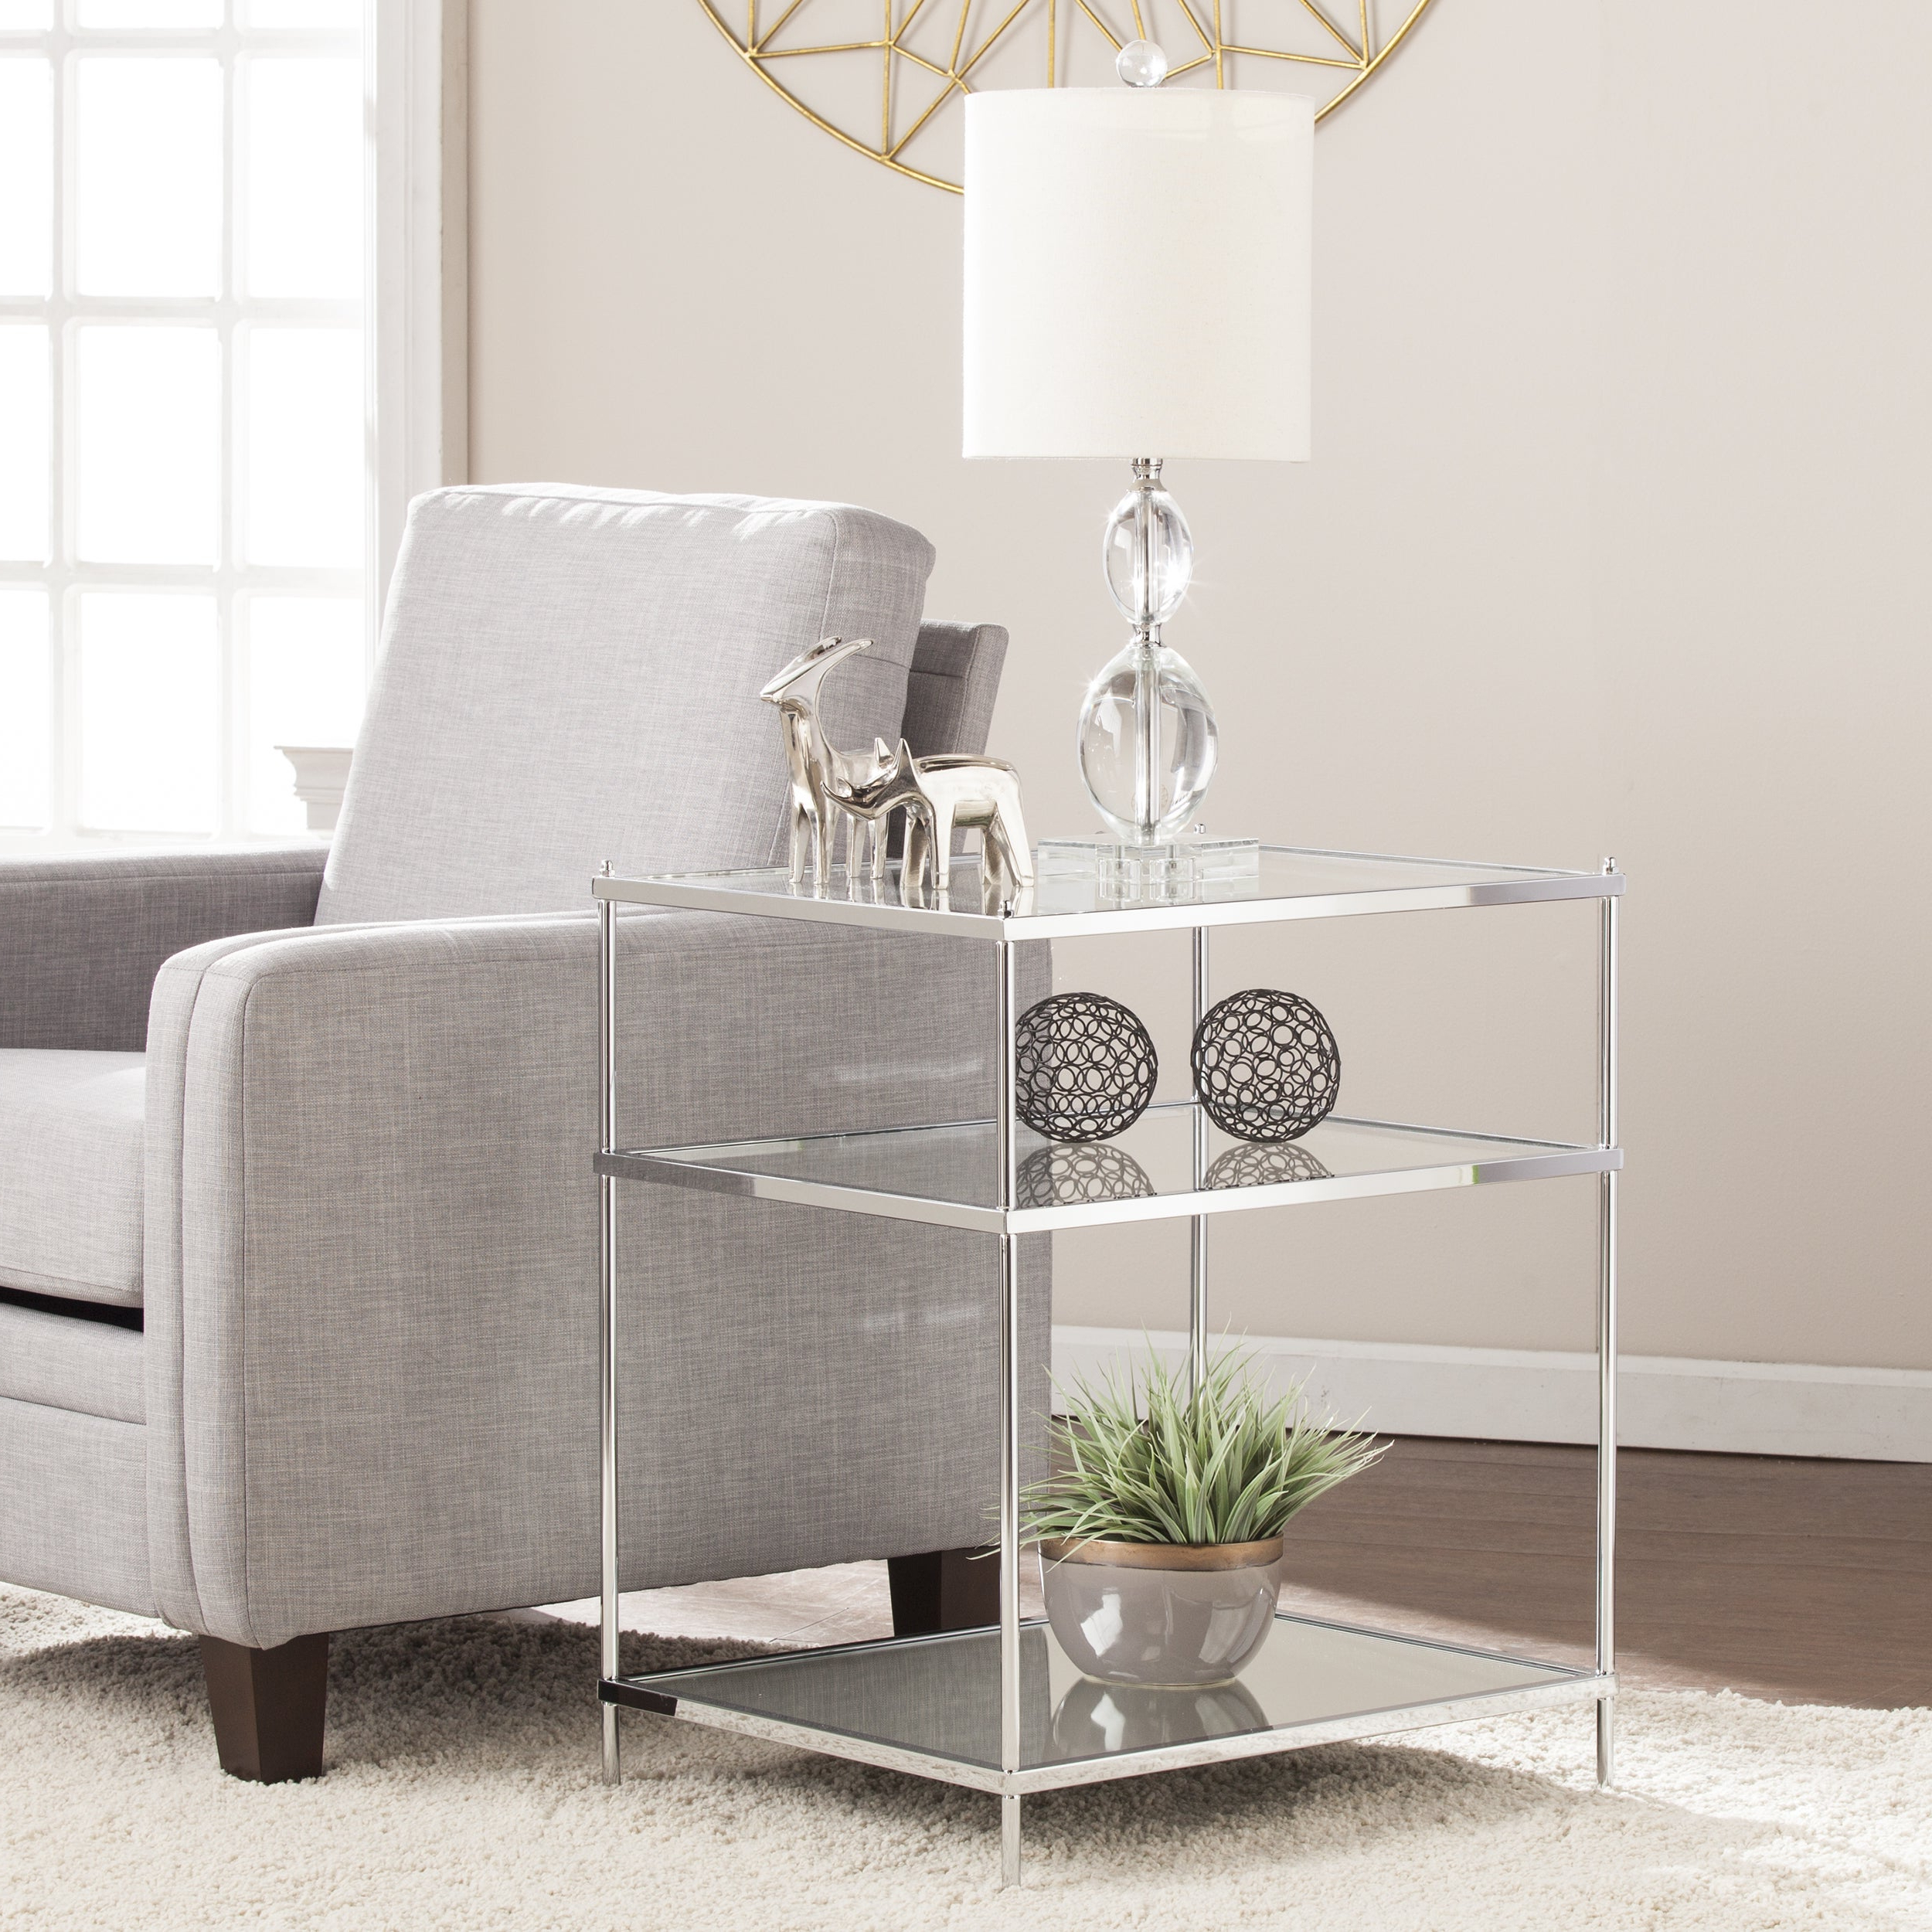 Silver Orchid Olivia Glam Mirrored Side Table Chrome With Regard To 2020 Silver Orchid Olivia Chrome Mirrored Coffee Cocktail Tables (View 10 of 20)